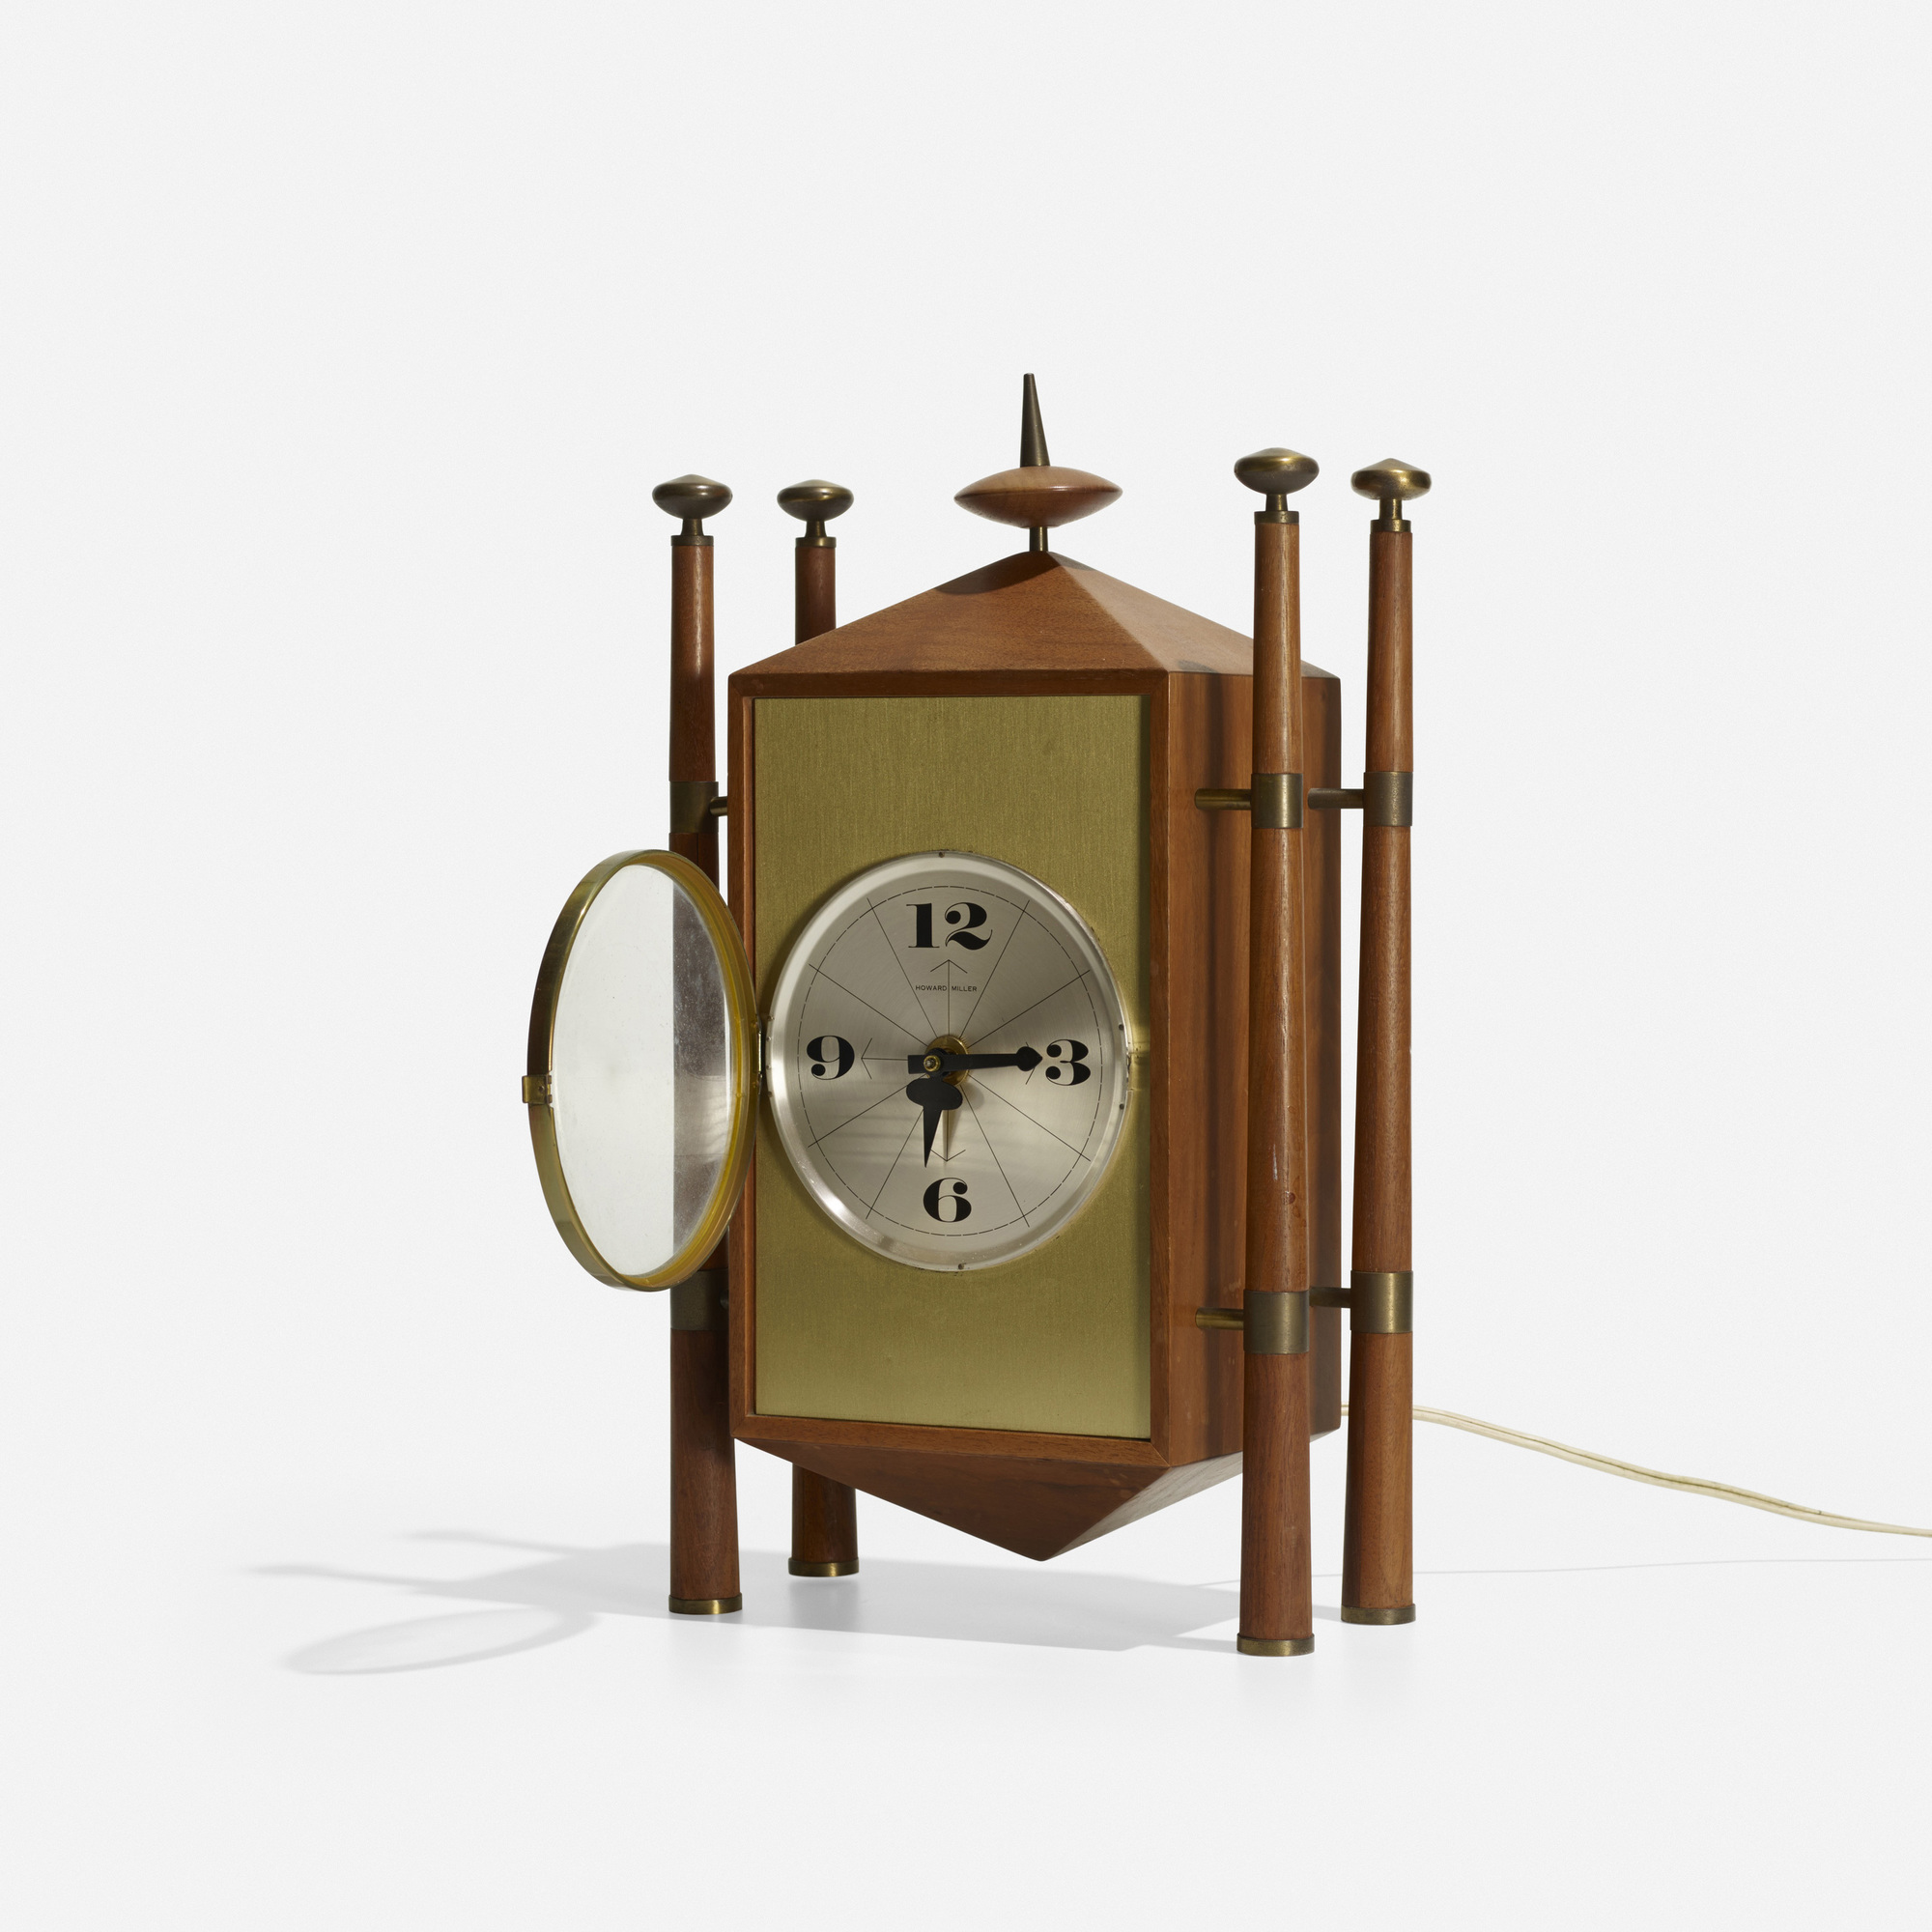 124: George Nelson & Associates / Baroque table clock, model 2255 (3 of 3)